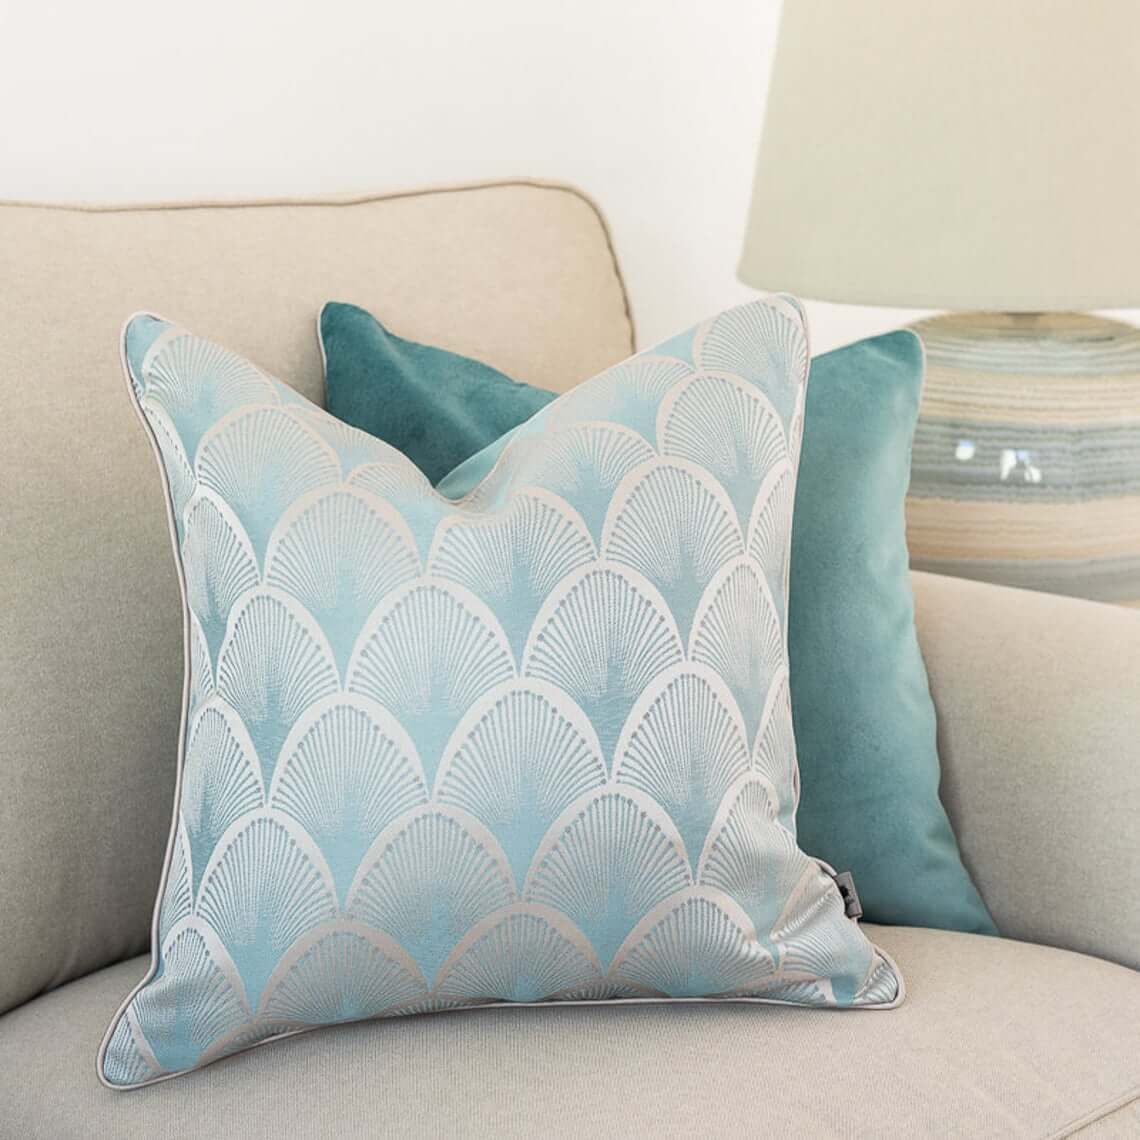 Peacock Printed Mint and Turquoise Pillows